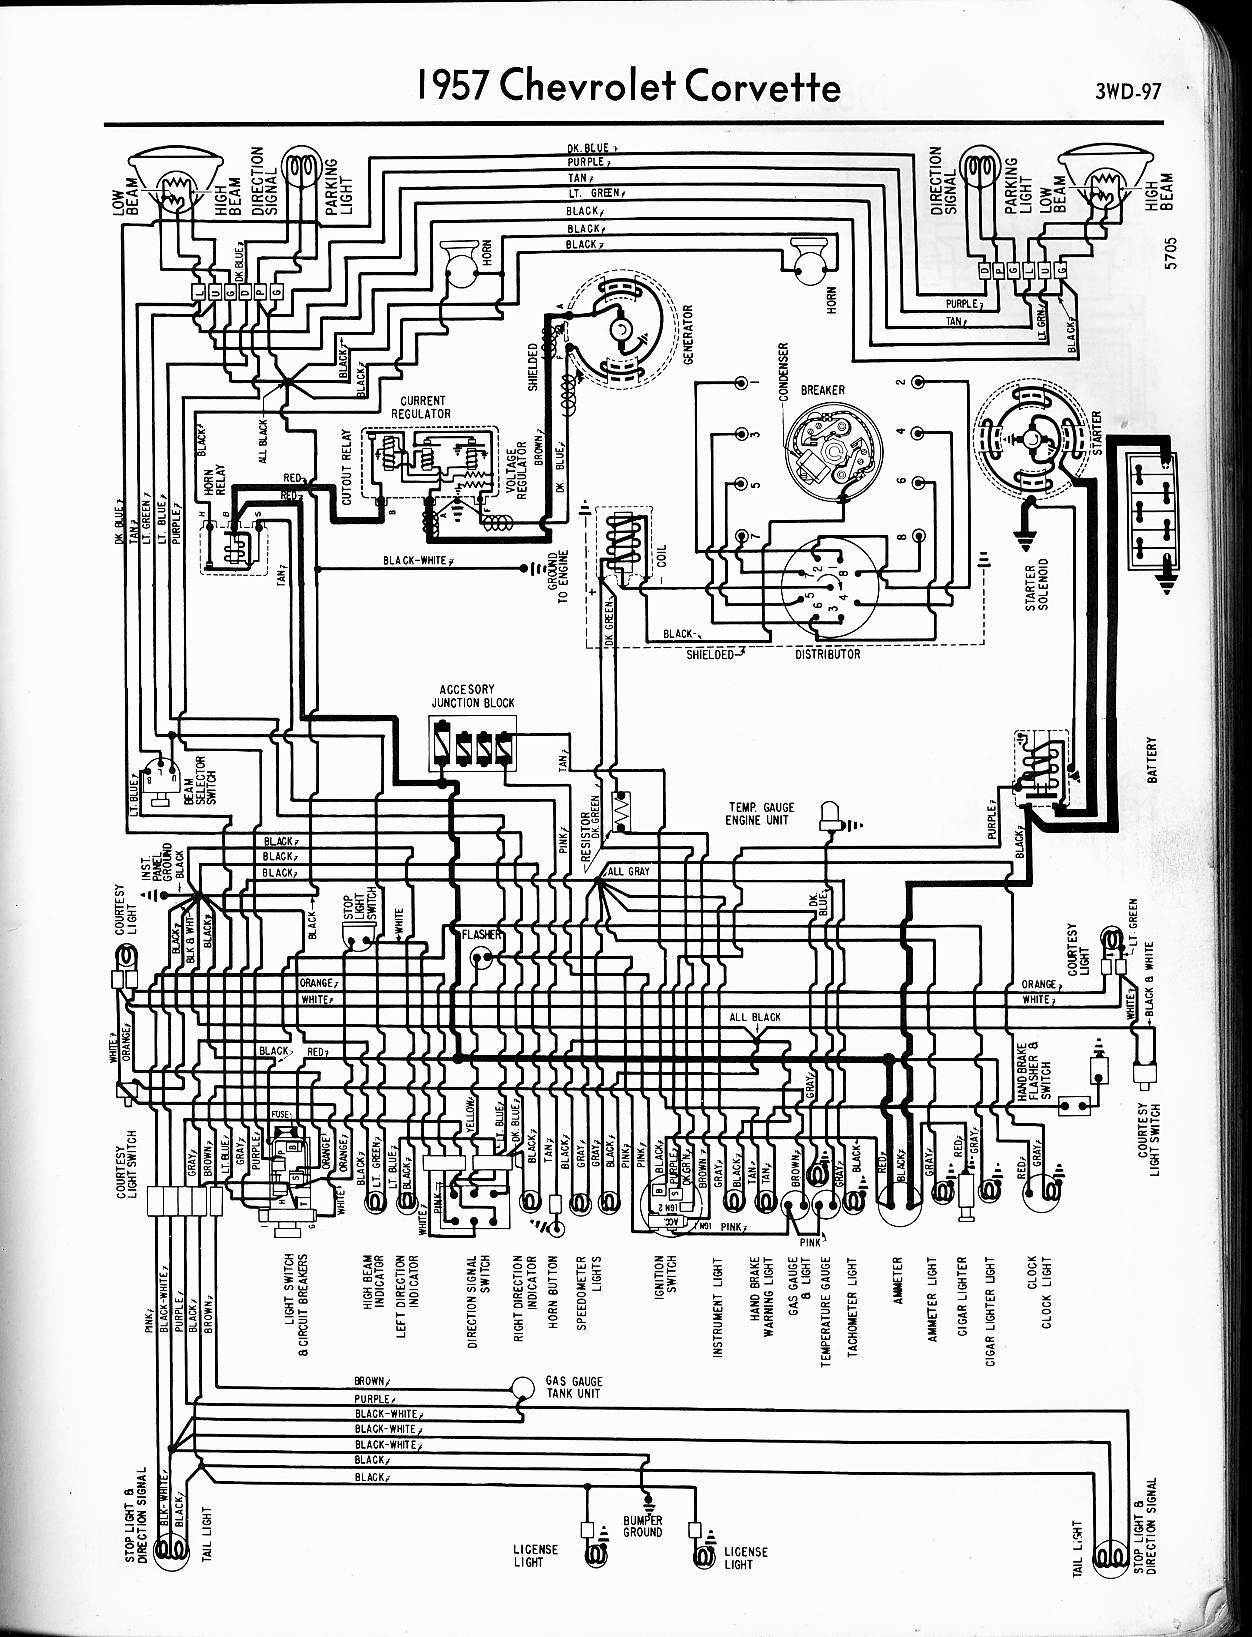 MWireChev57_3WD 097 57 65 chevy wiring diagrams 1960 corvette wiring diagram at fashall.co